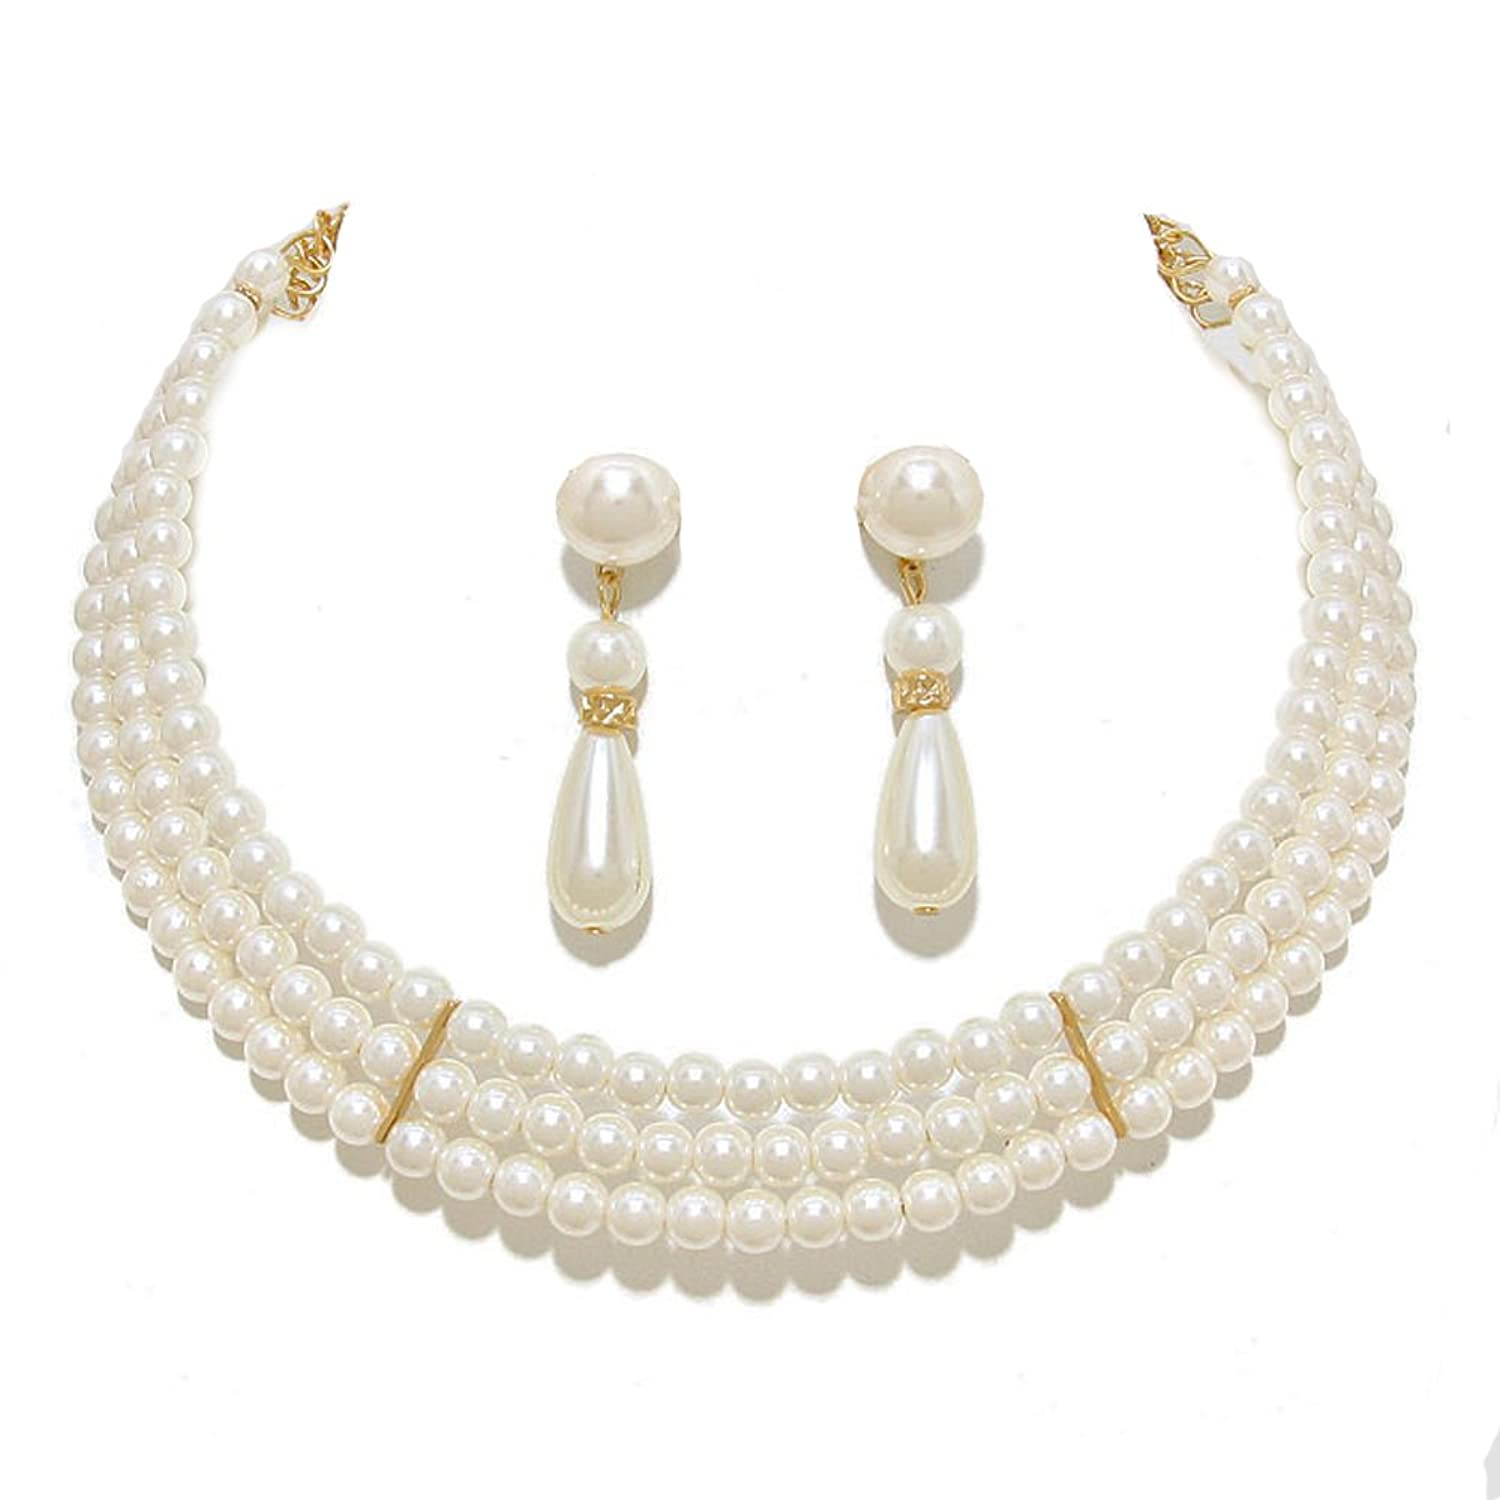 Vintage Style Jewelry, Retro Jewelry 3 Rows Elegant Simulated Pearl Choker Necklace Pierced Earring 2 Set $9.99 AT vintagedancer.com